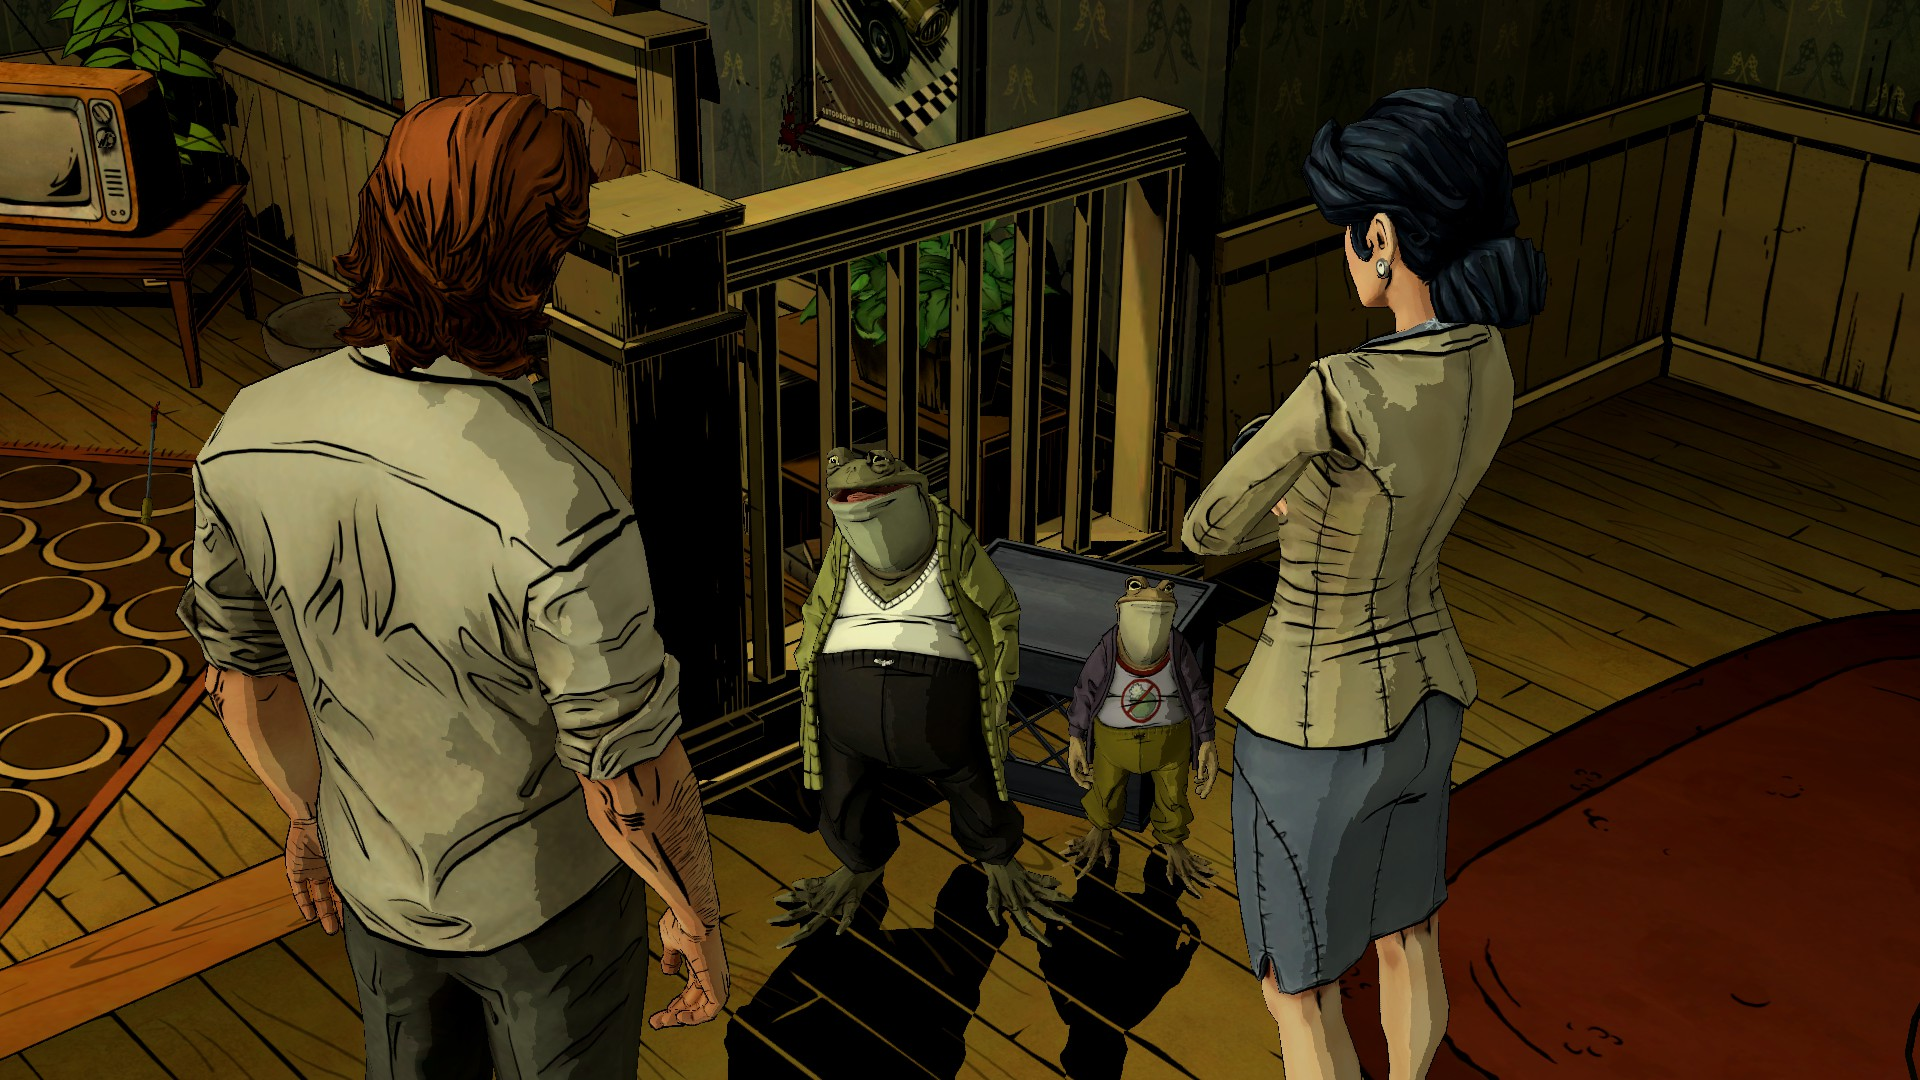 THE WOLF AMONG US game frog u wallpaper background 1920x1080